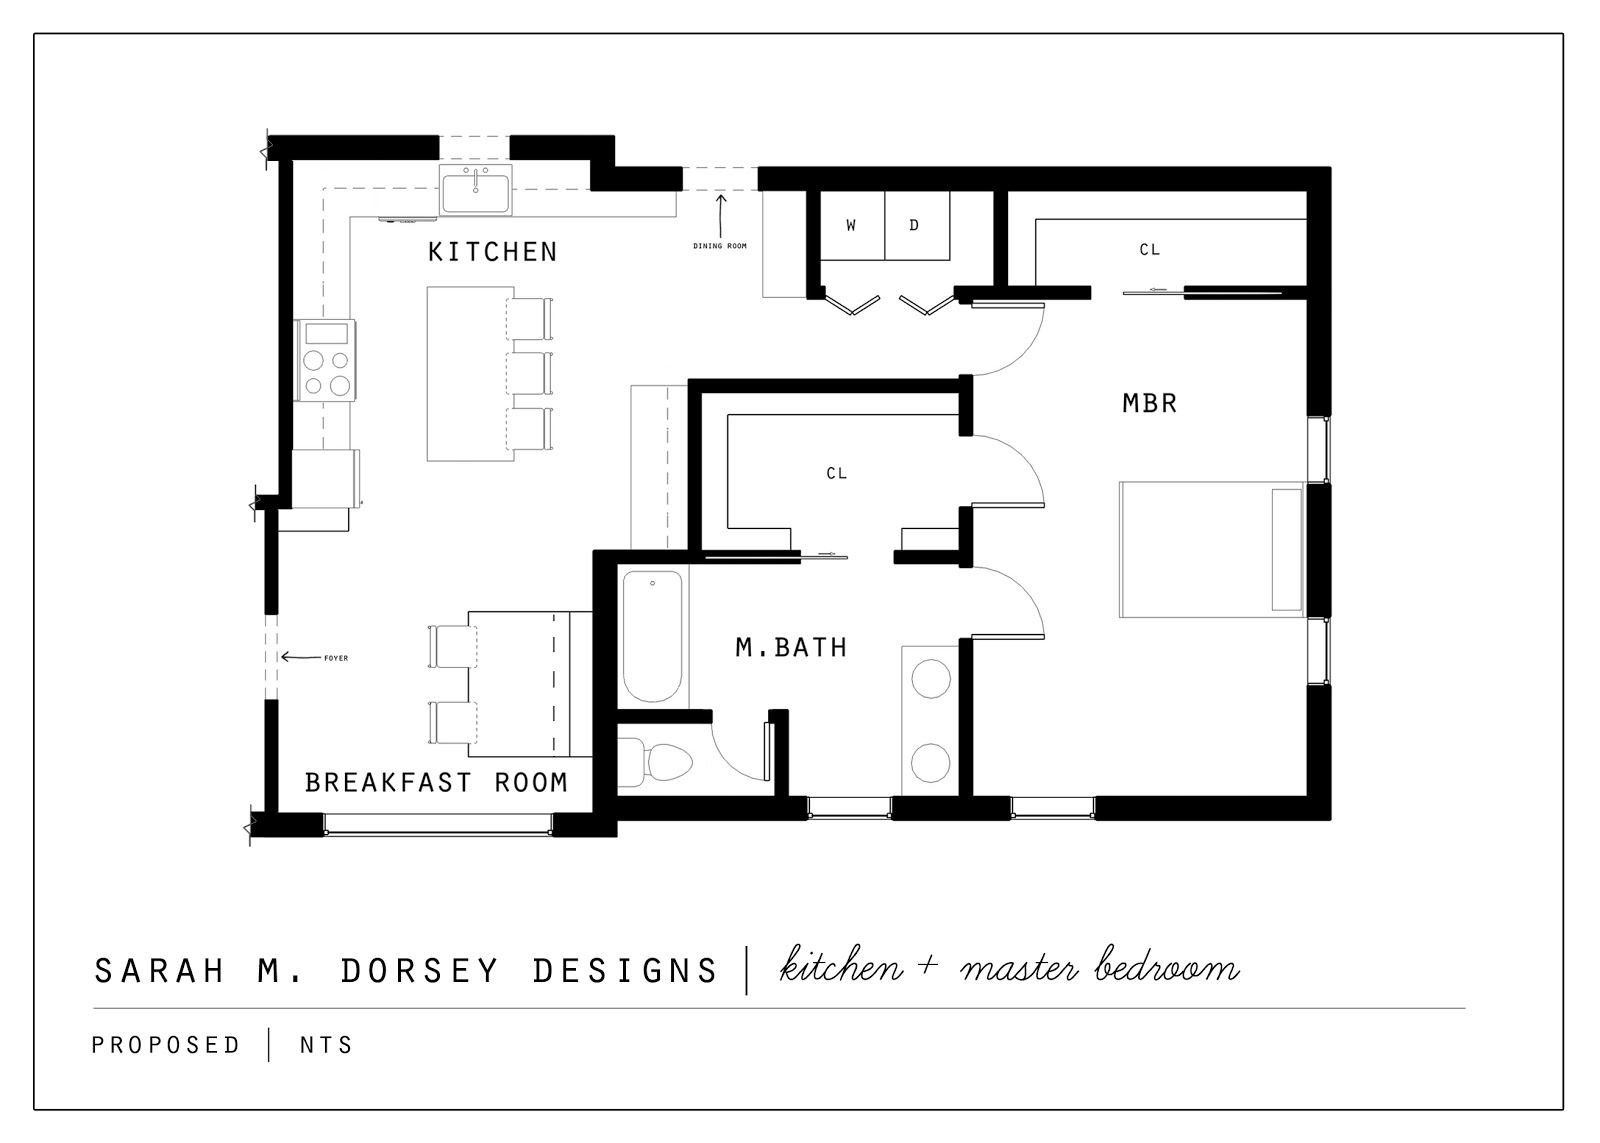 Sarah m dorsey designs proposed kitchen and master suite for Master bedroom design plans